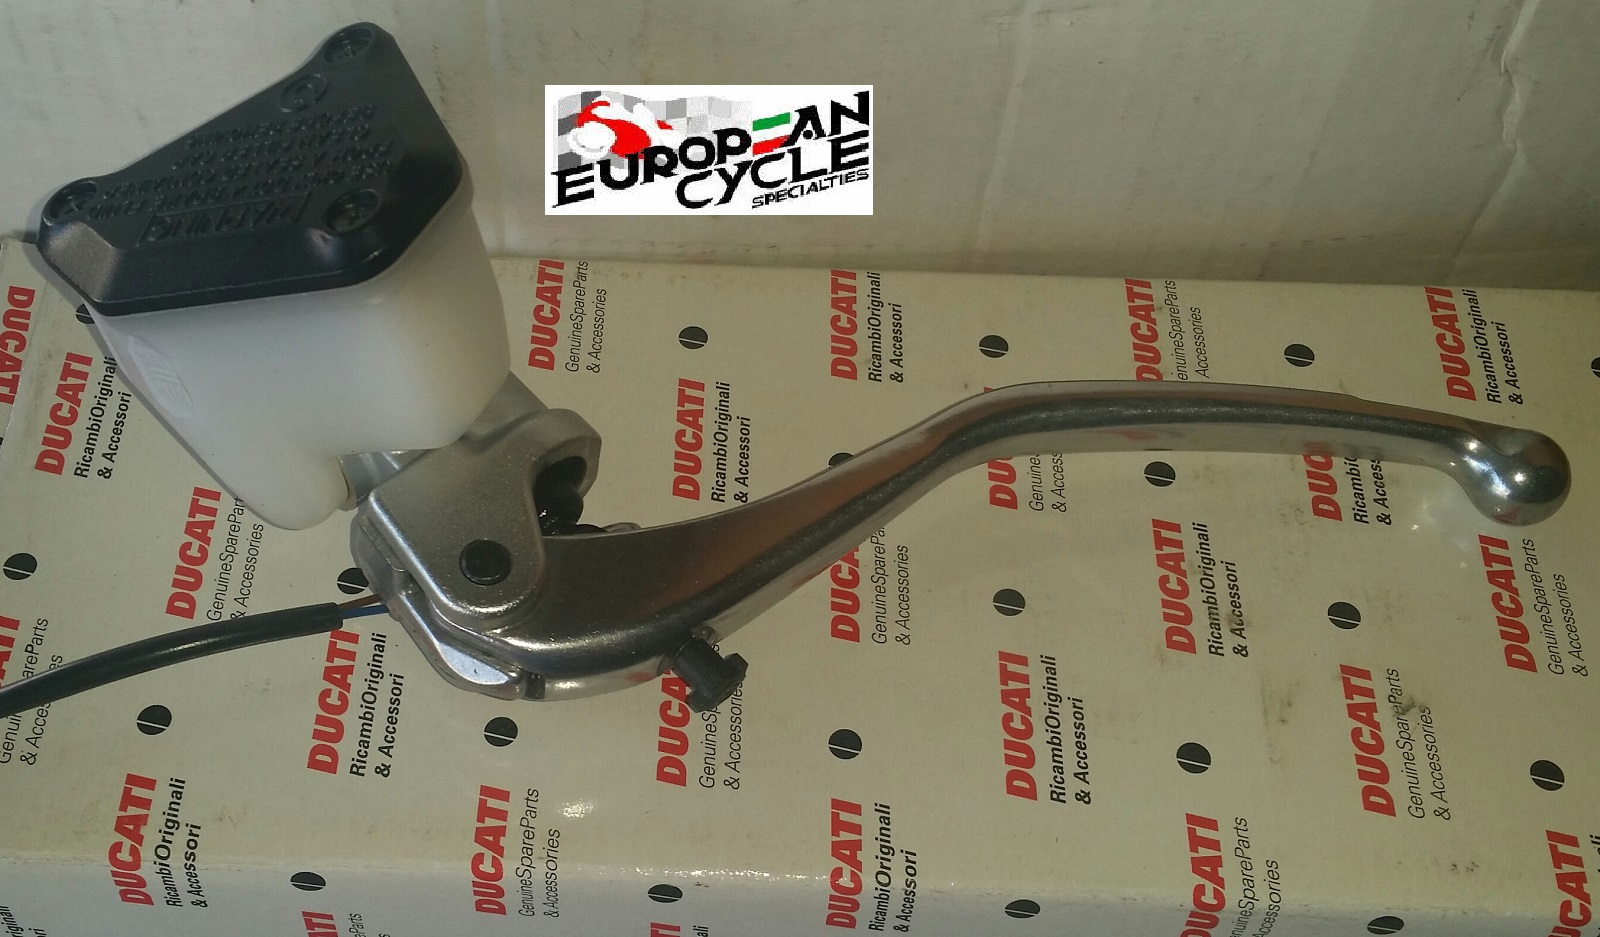 OEM Ducati Brembo Clutch Master Cylinder 63040261A & 63040263A